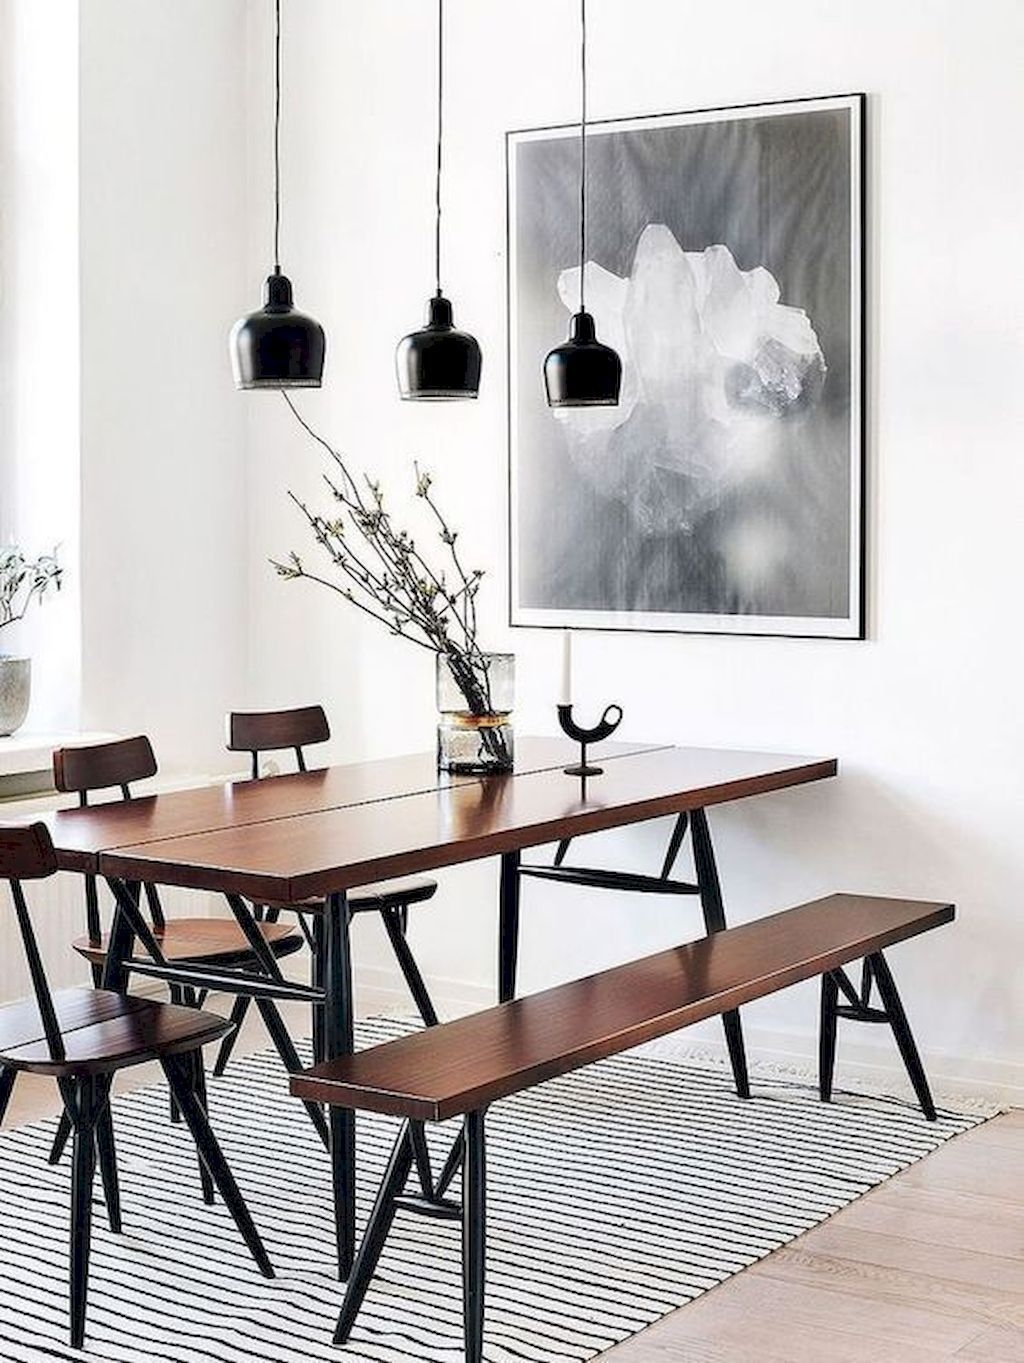 Best Minimalist Dining Room Design Ideas For Dinner With Your Family40